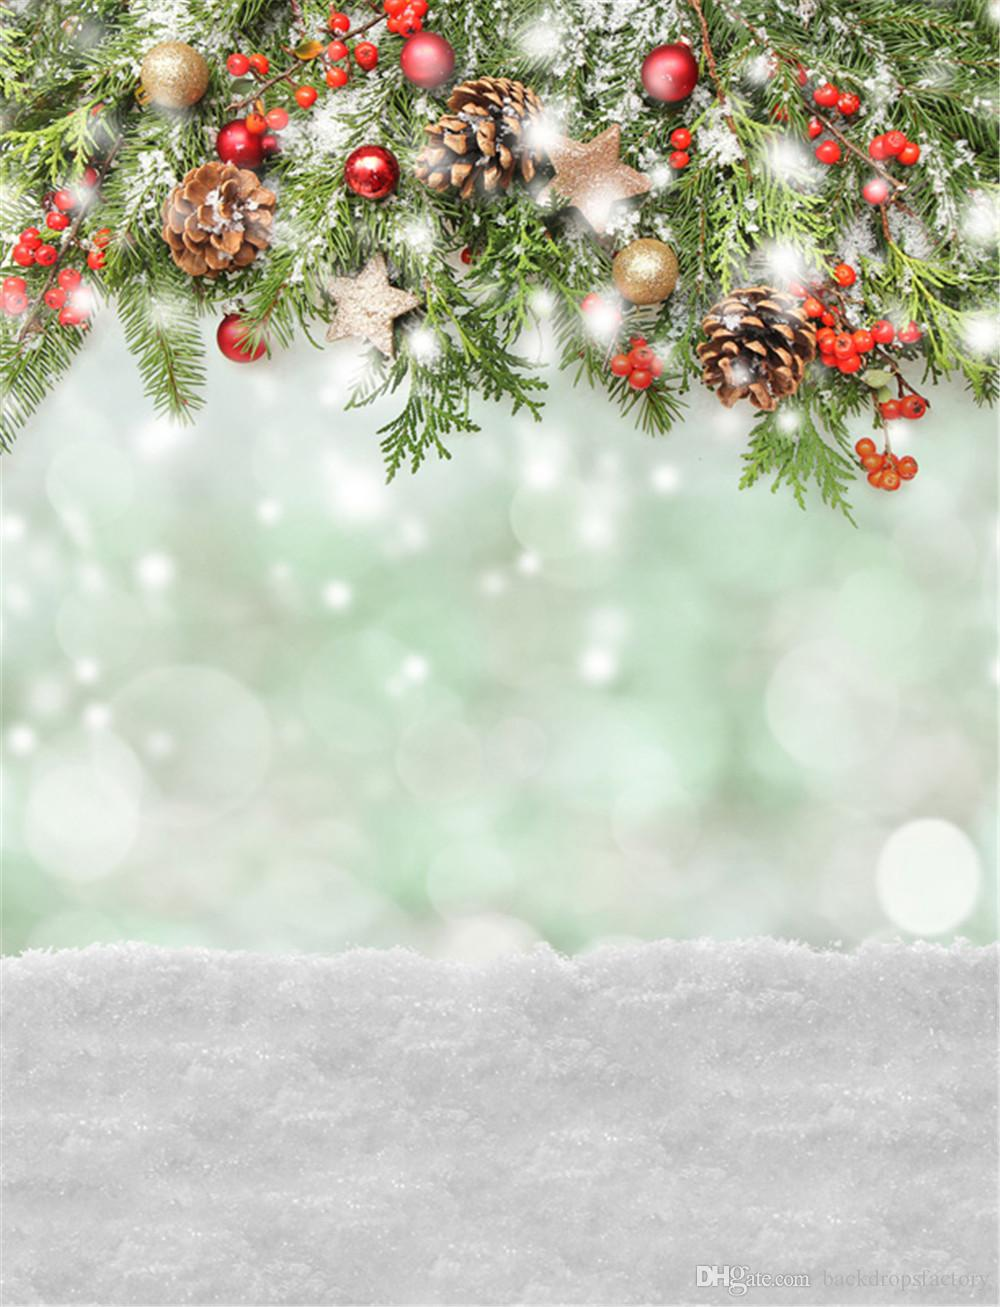 Christmas Background Vinyl Photography Backdrops Green Pine Tree Leaves Gold Red Balls Baby Newborn Kids Photo Shoot Backdrop Snow Floor From